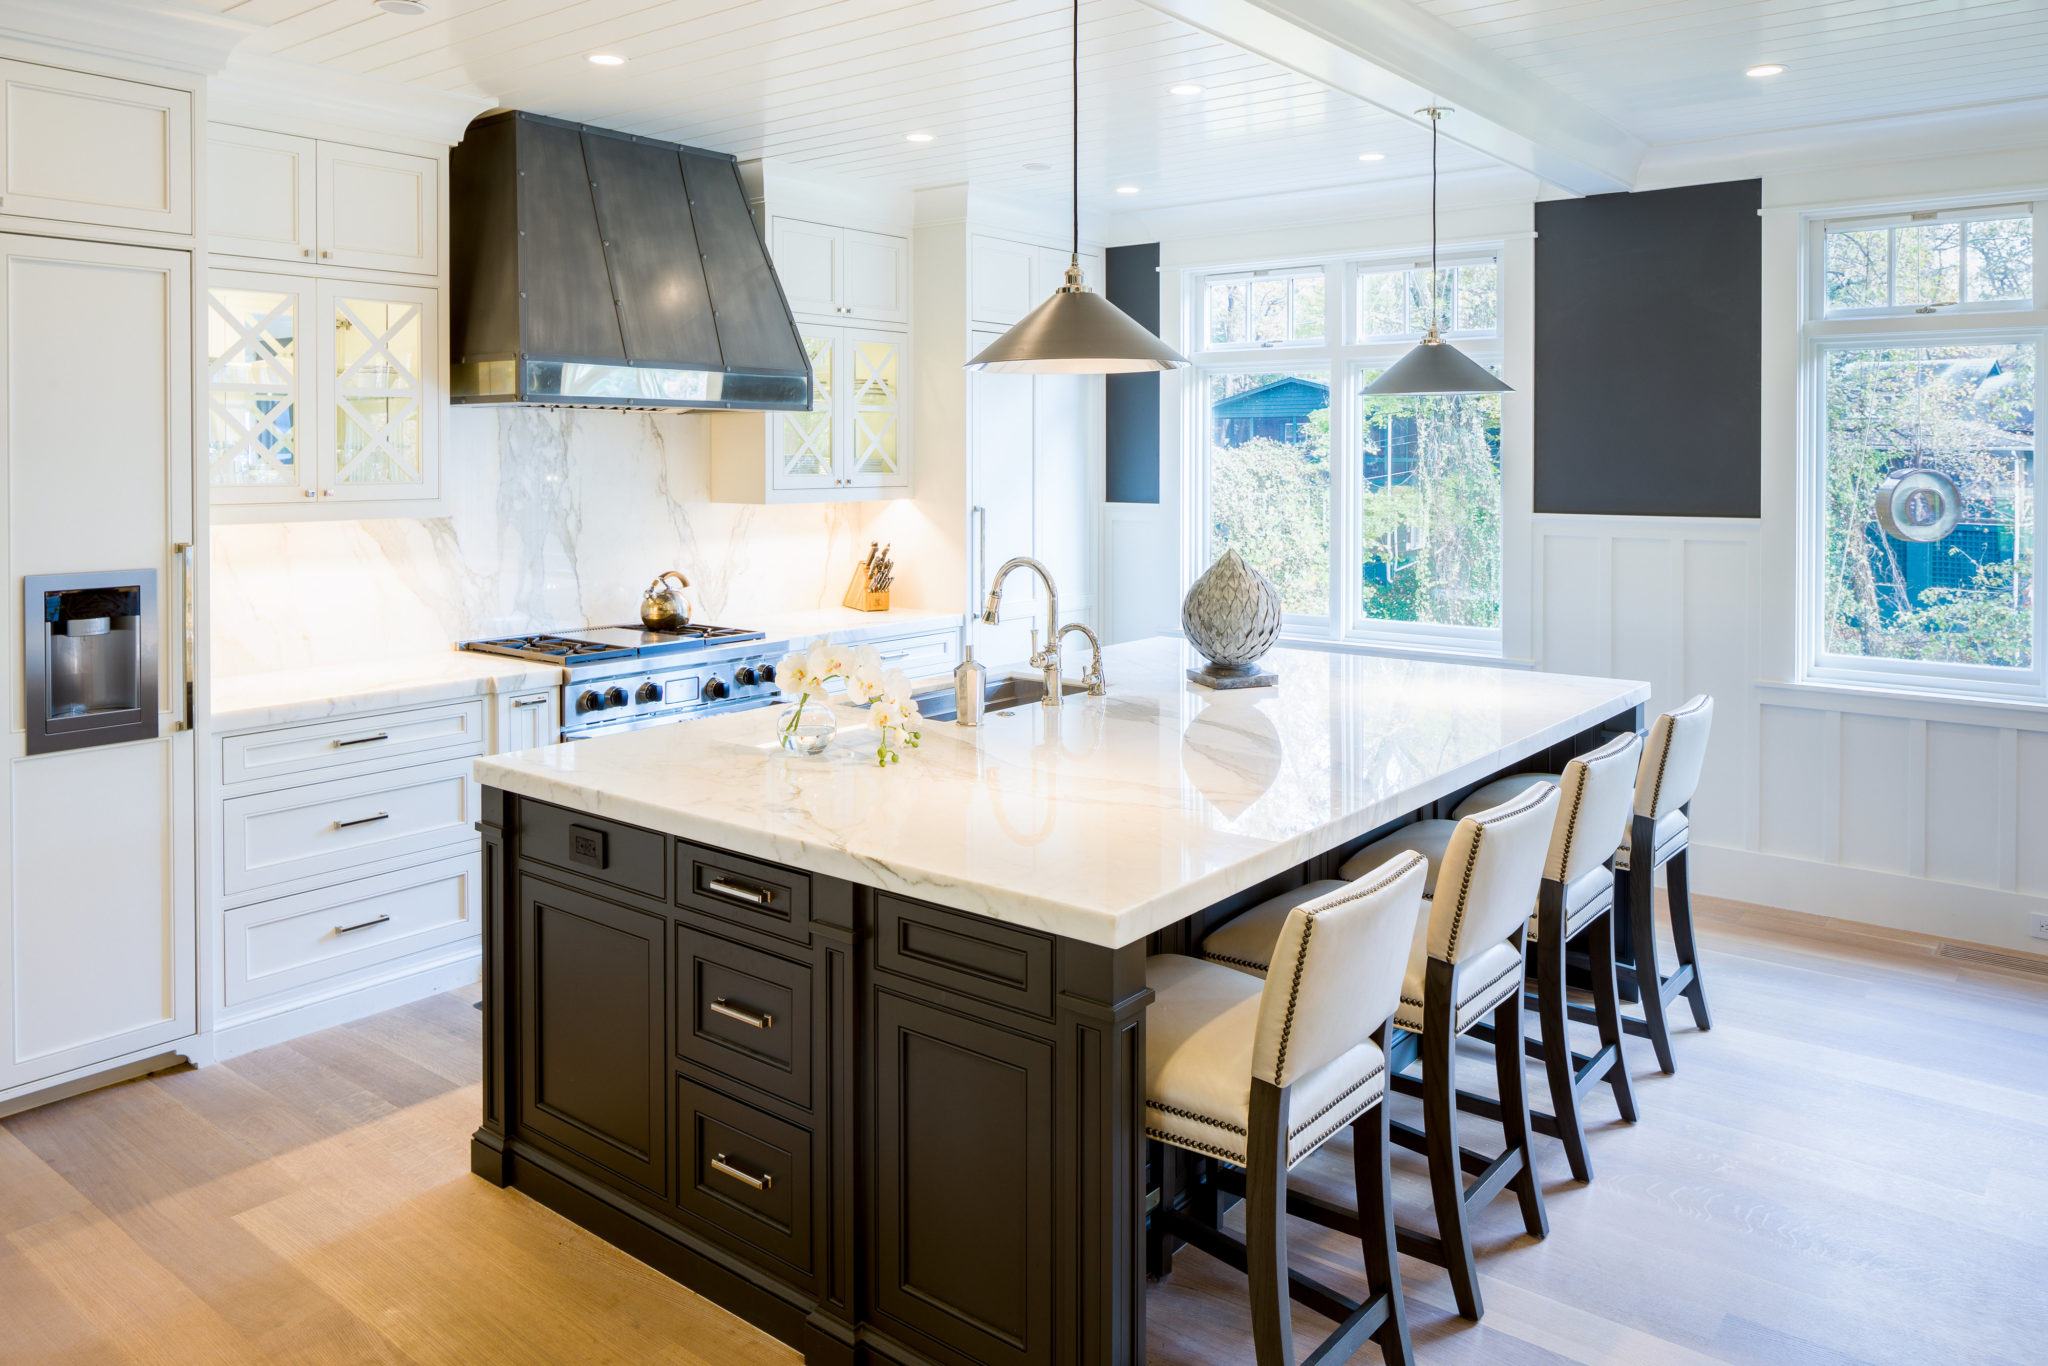 Annapolis. MD Residence - Architectural Design Studios 10